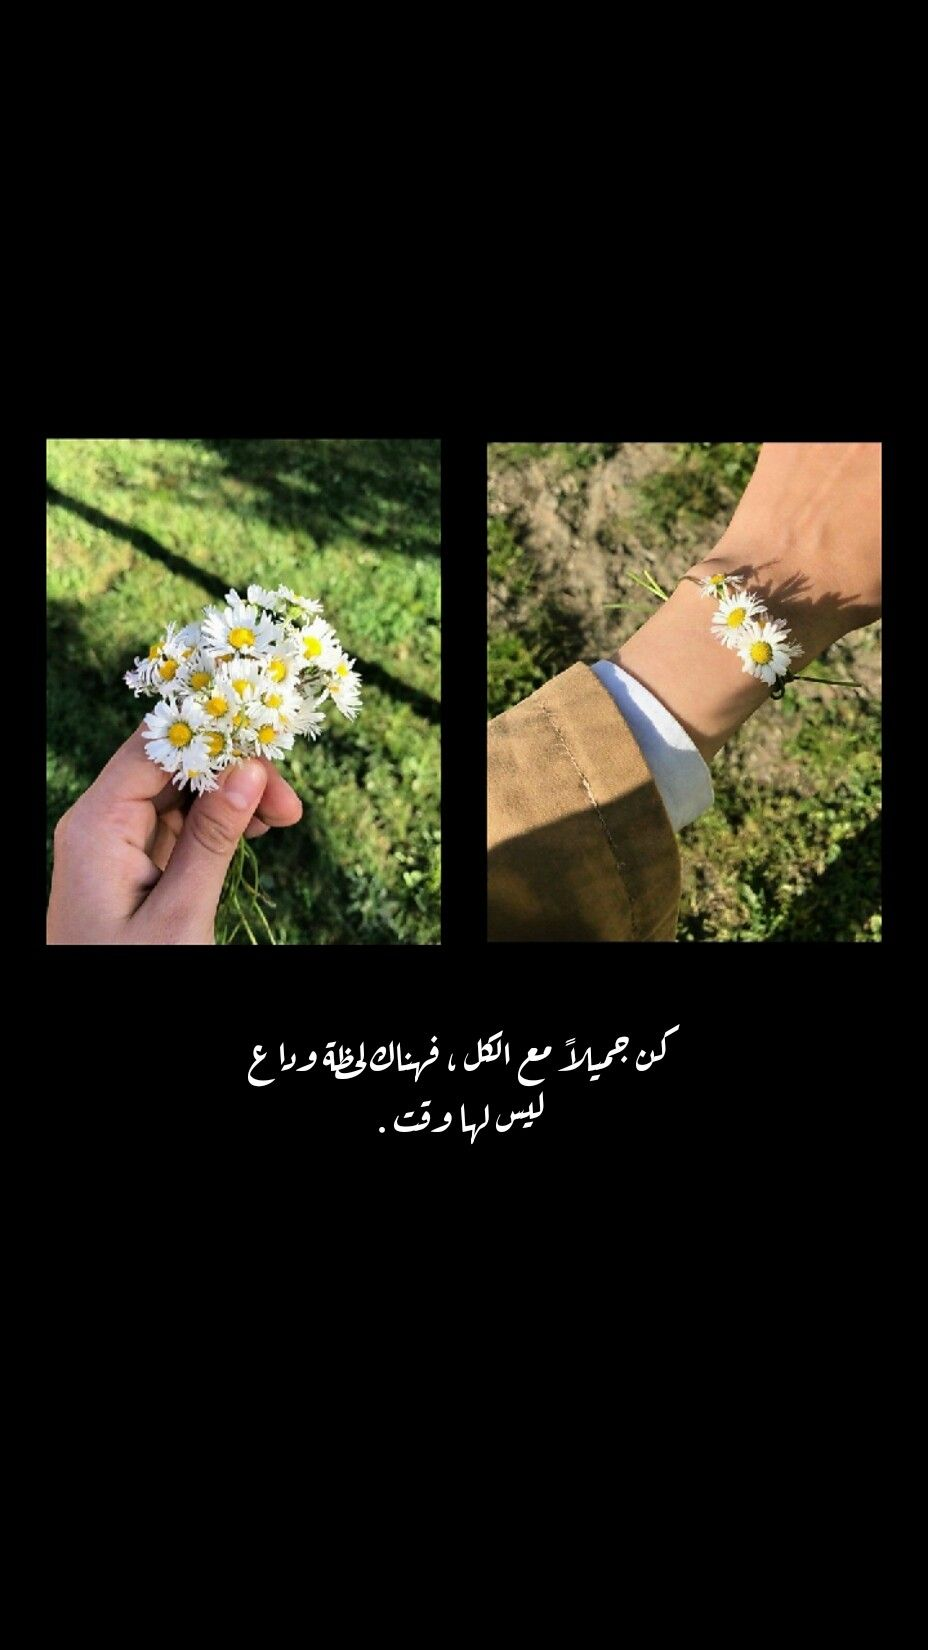 Pin By Ail Ail On راقت لي I Like It Arabic Quotes Beautiful Arabic Words Arabic Love Quotes